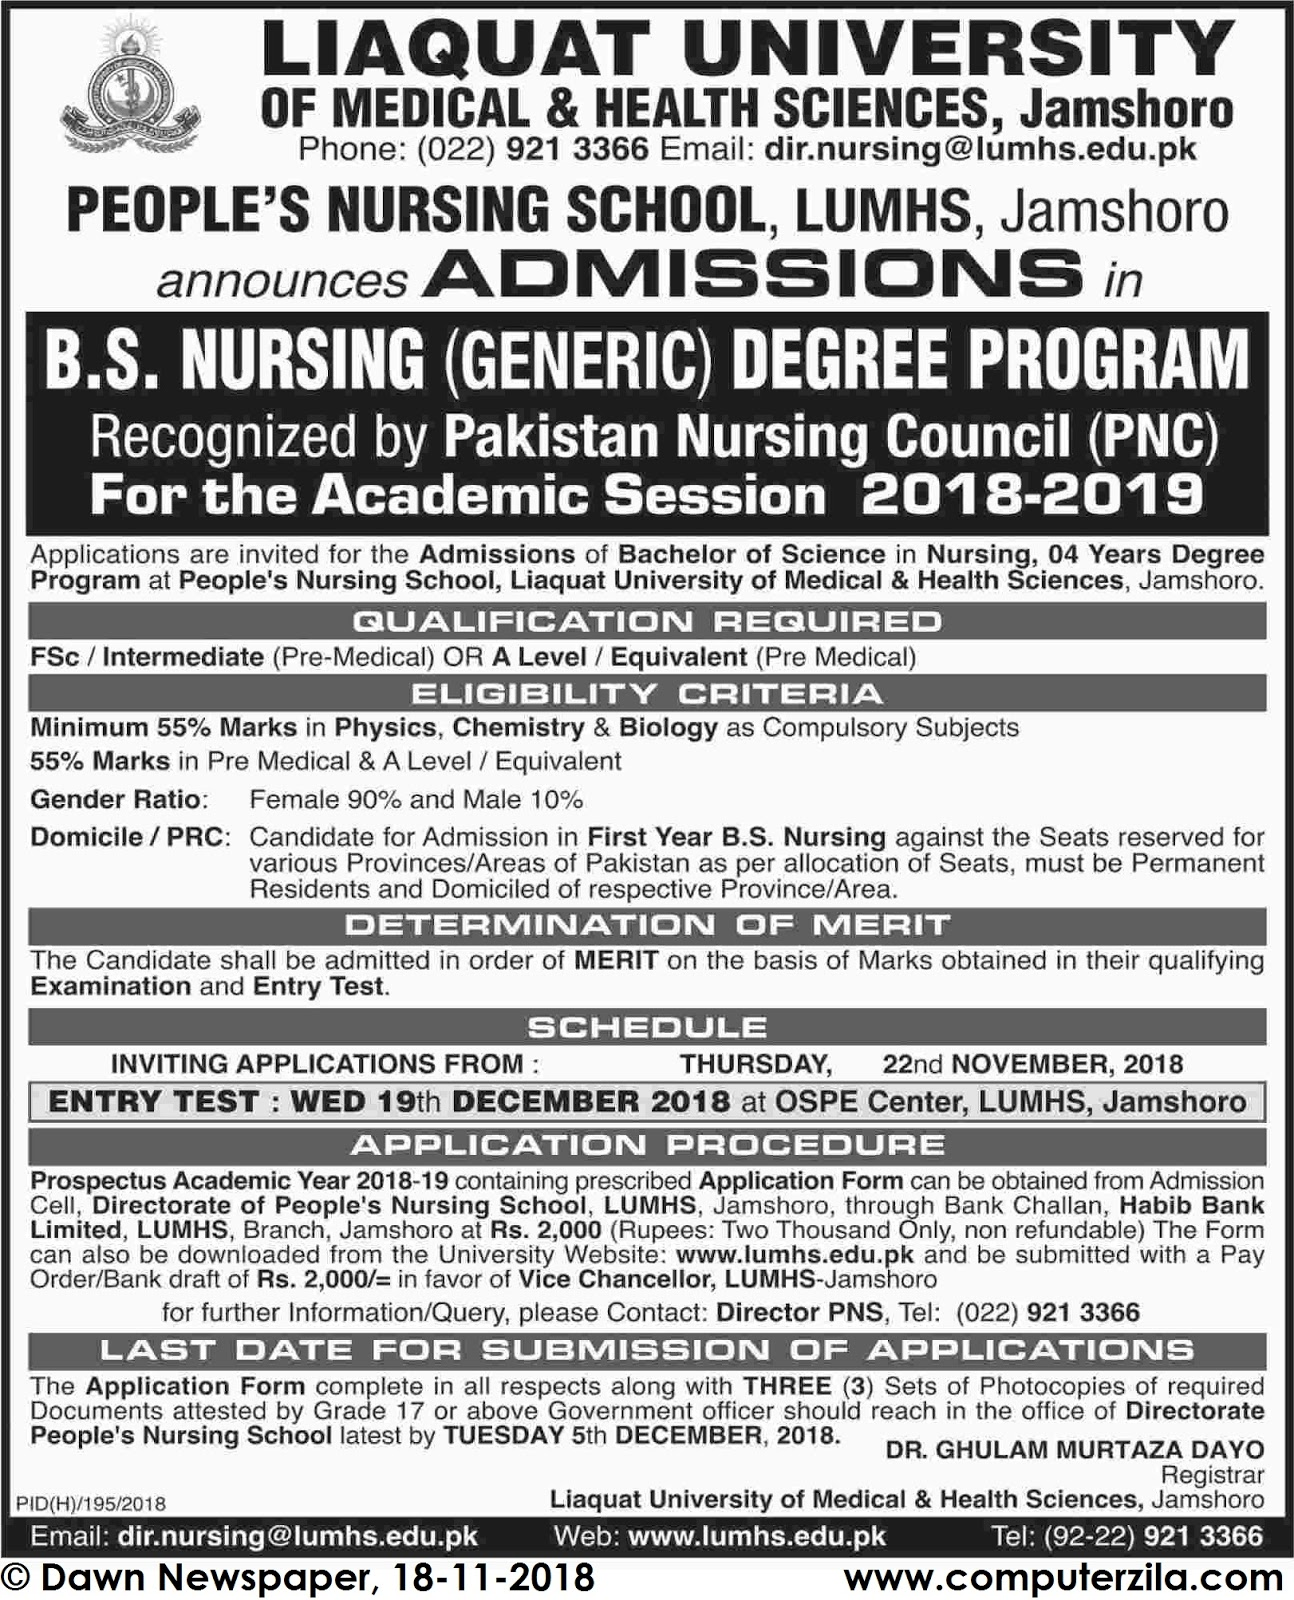 Admissions Open For Spring 2018 At LUMHS Jamshoro Campus